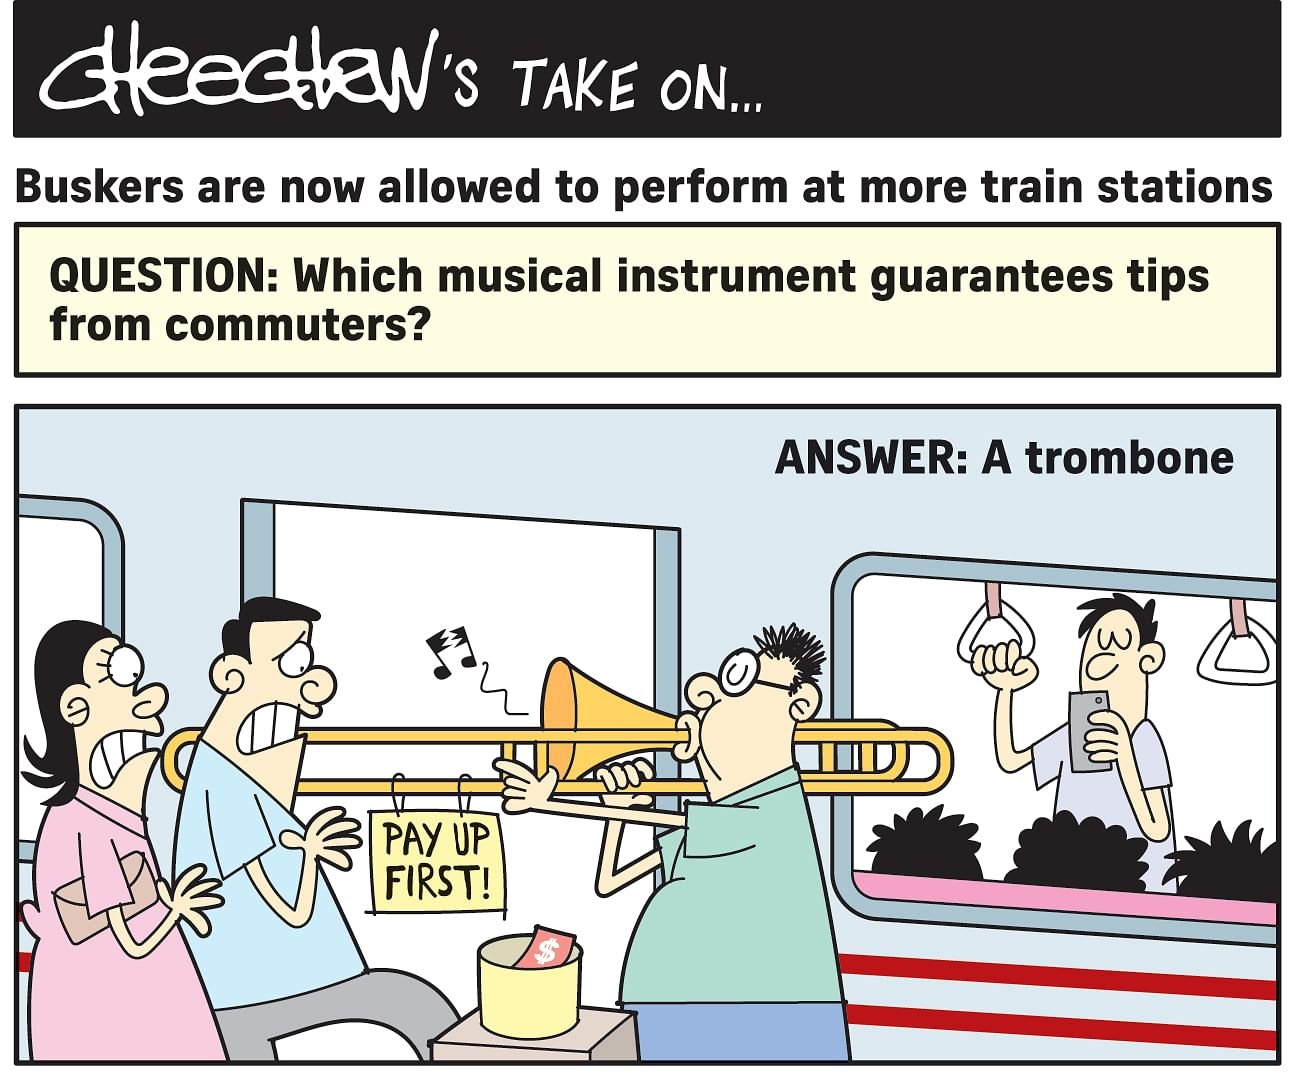 Buskers are now allowed to peform at more train stations